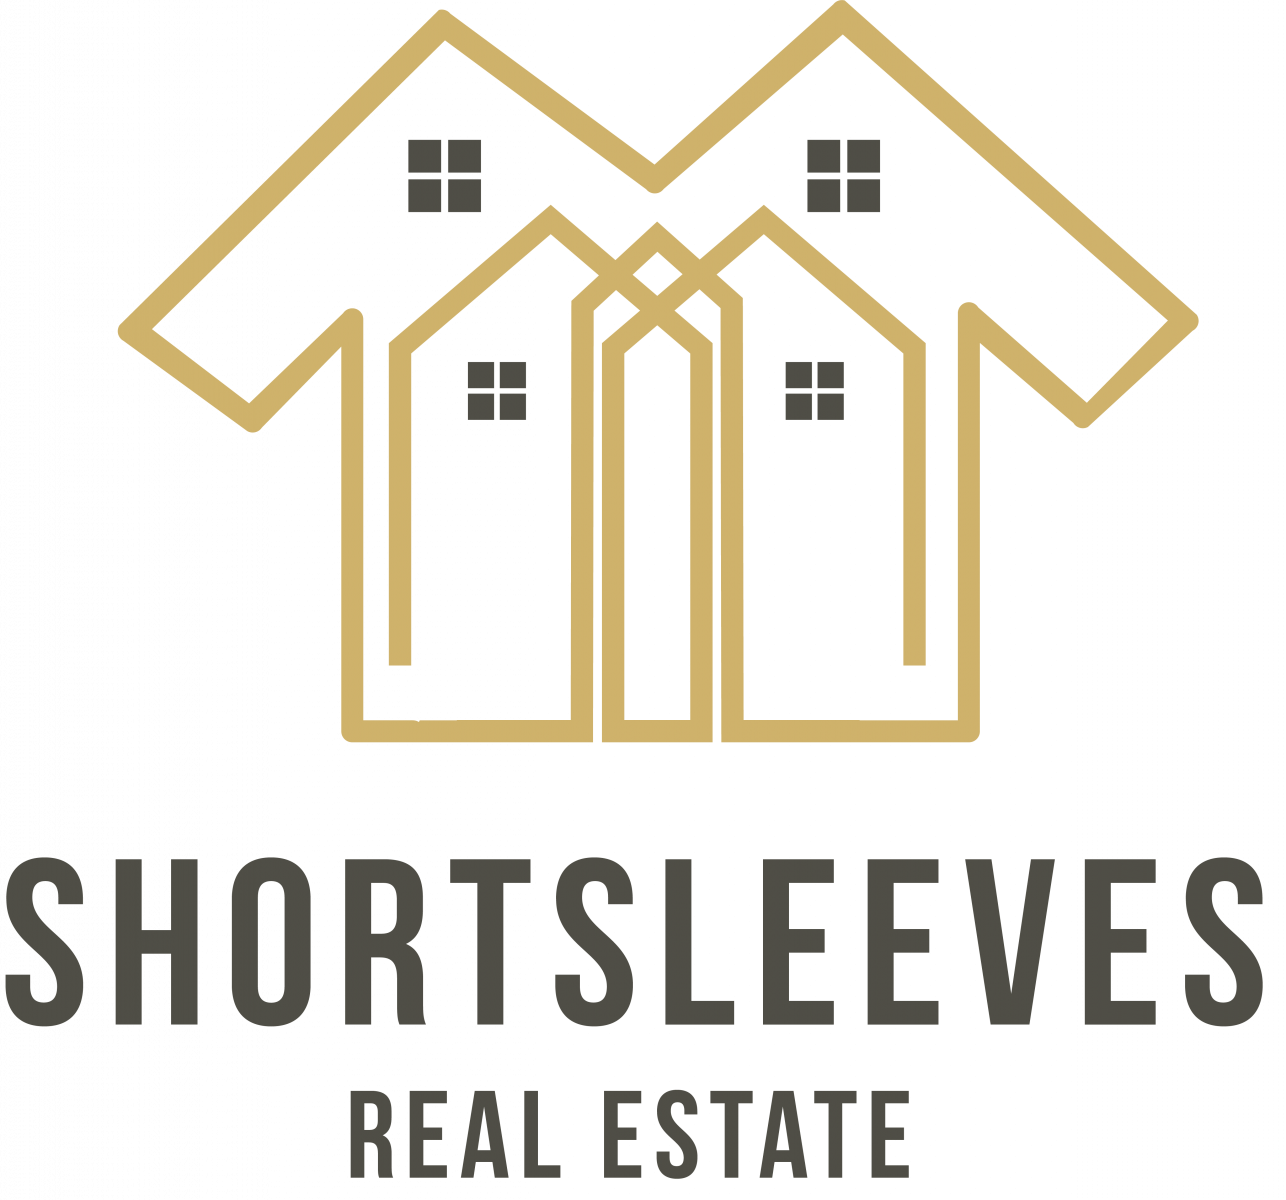 Shortsleeves Real Estate logo